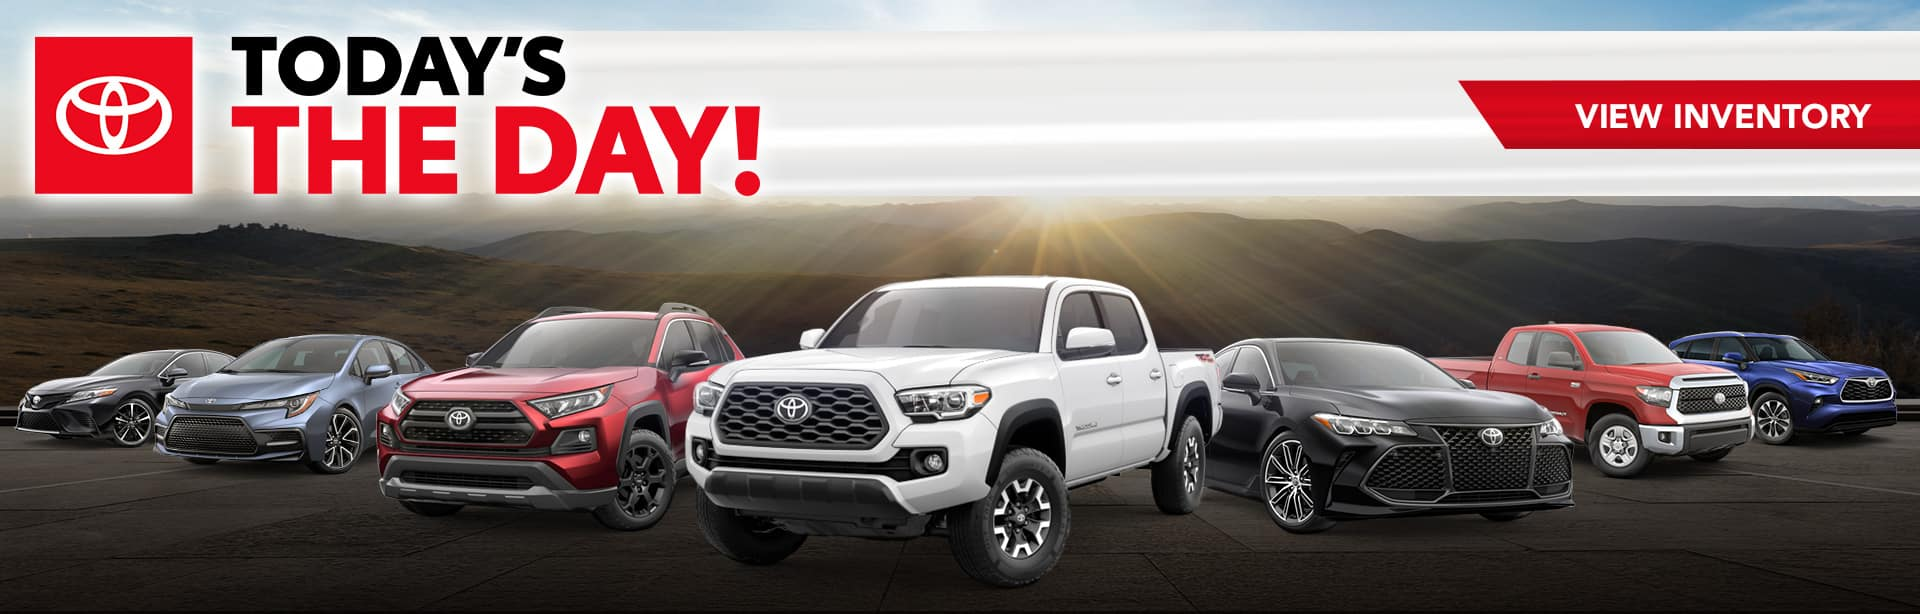 Today's the Day at Bev Smith Toyota!